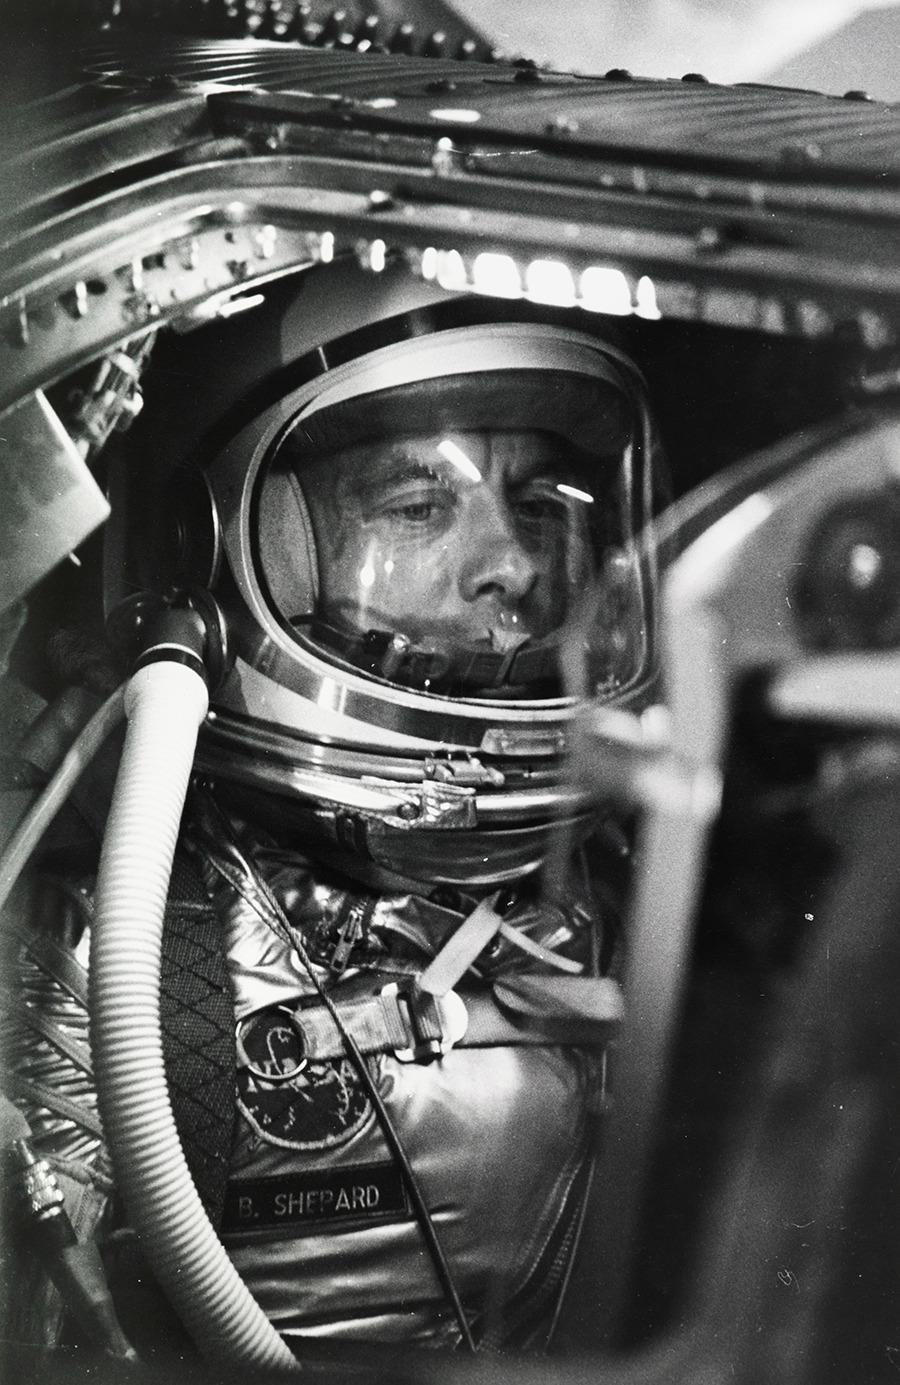 Alan Shepard waits to become the first American in space, Cape Canaveral, 1961.